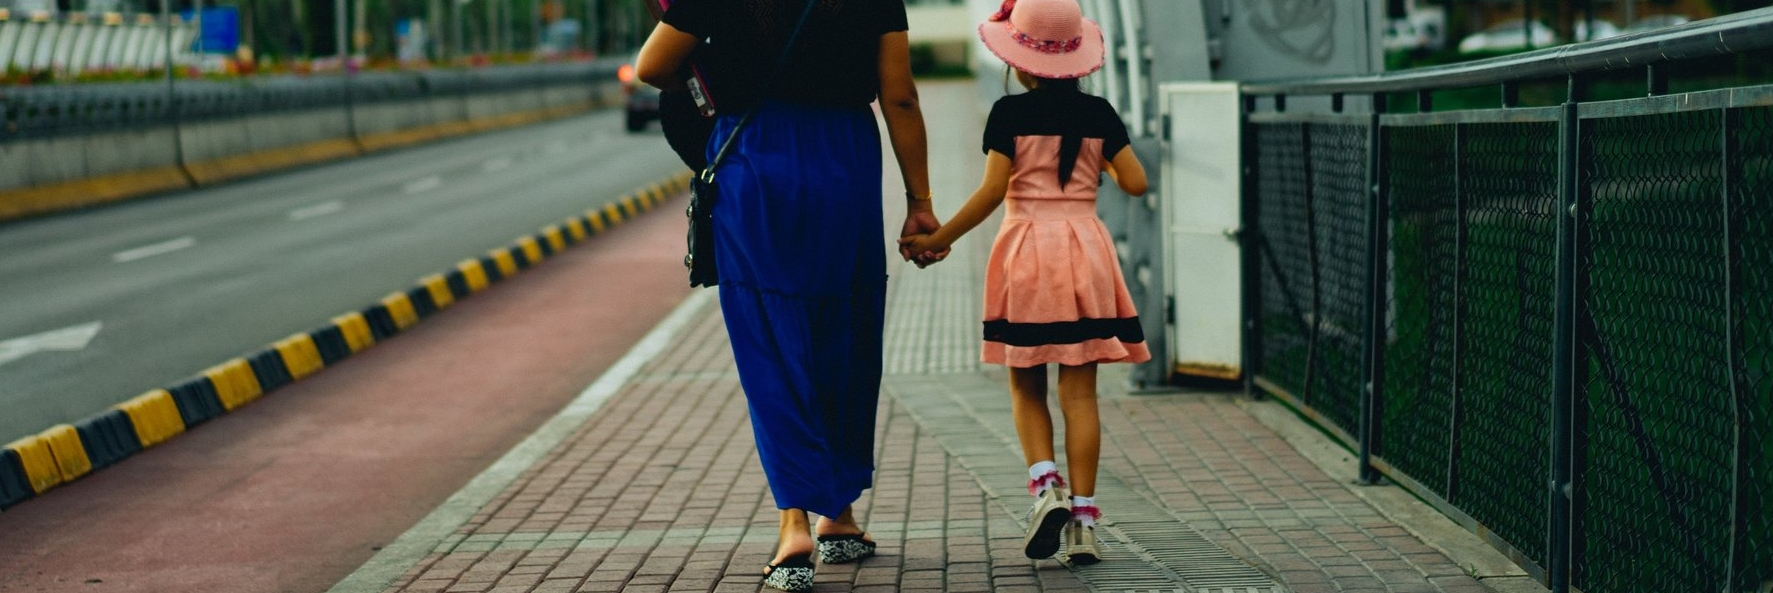 mother-daughter-walk_4460x4460.jpg